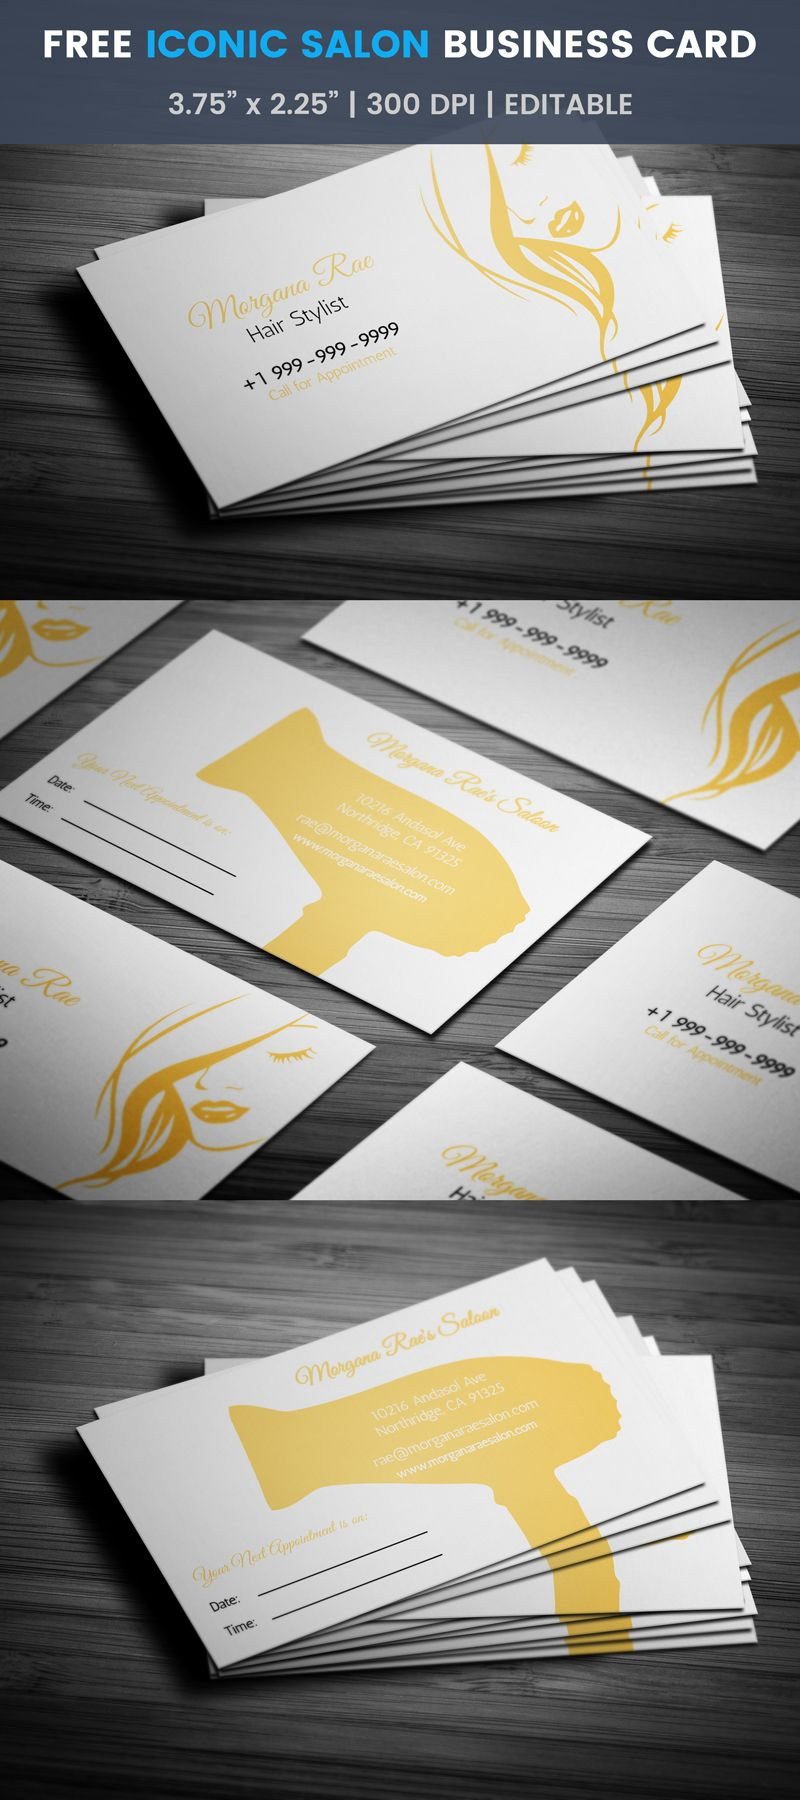 Stylish womens hair salon business card template style salon stylish womens hair salon business card template style salon accmission Gallery